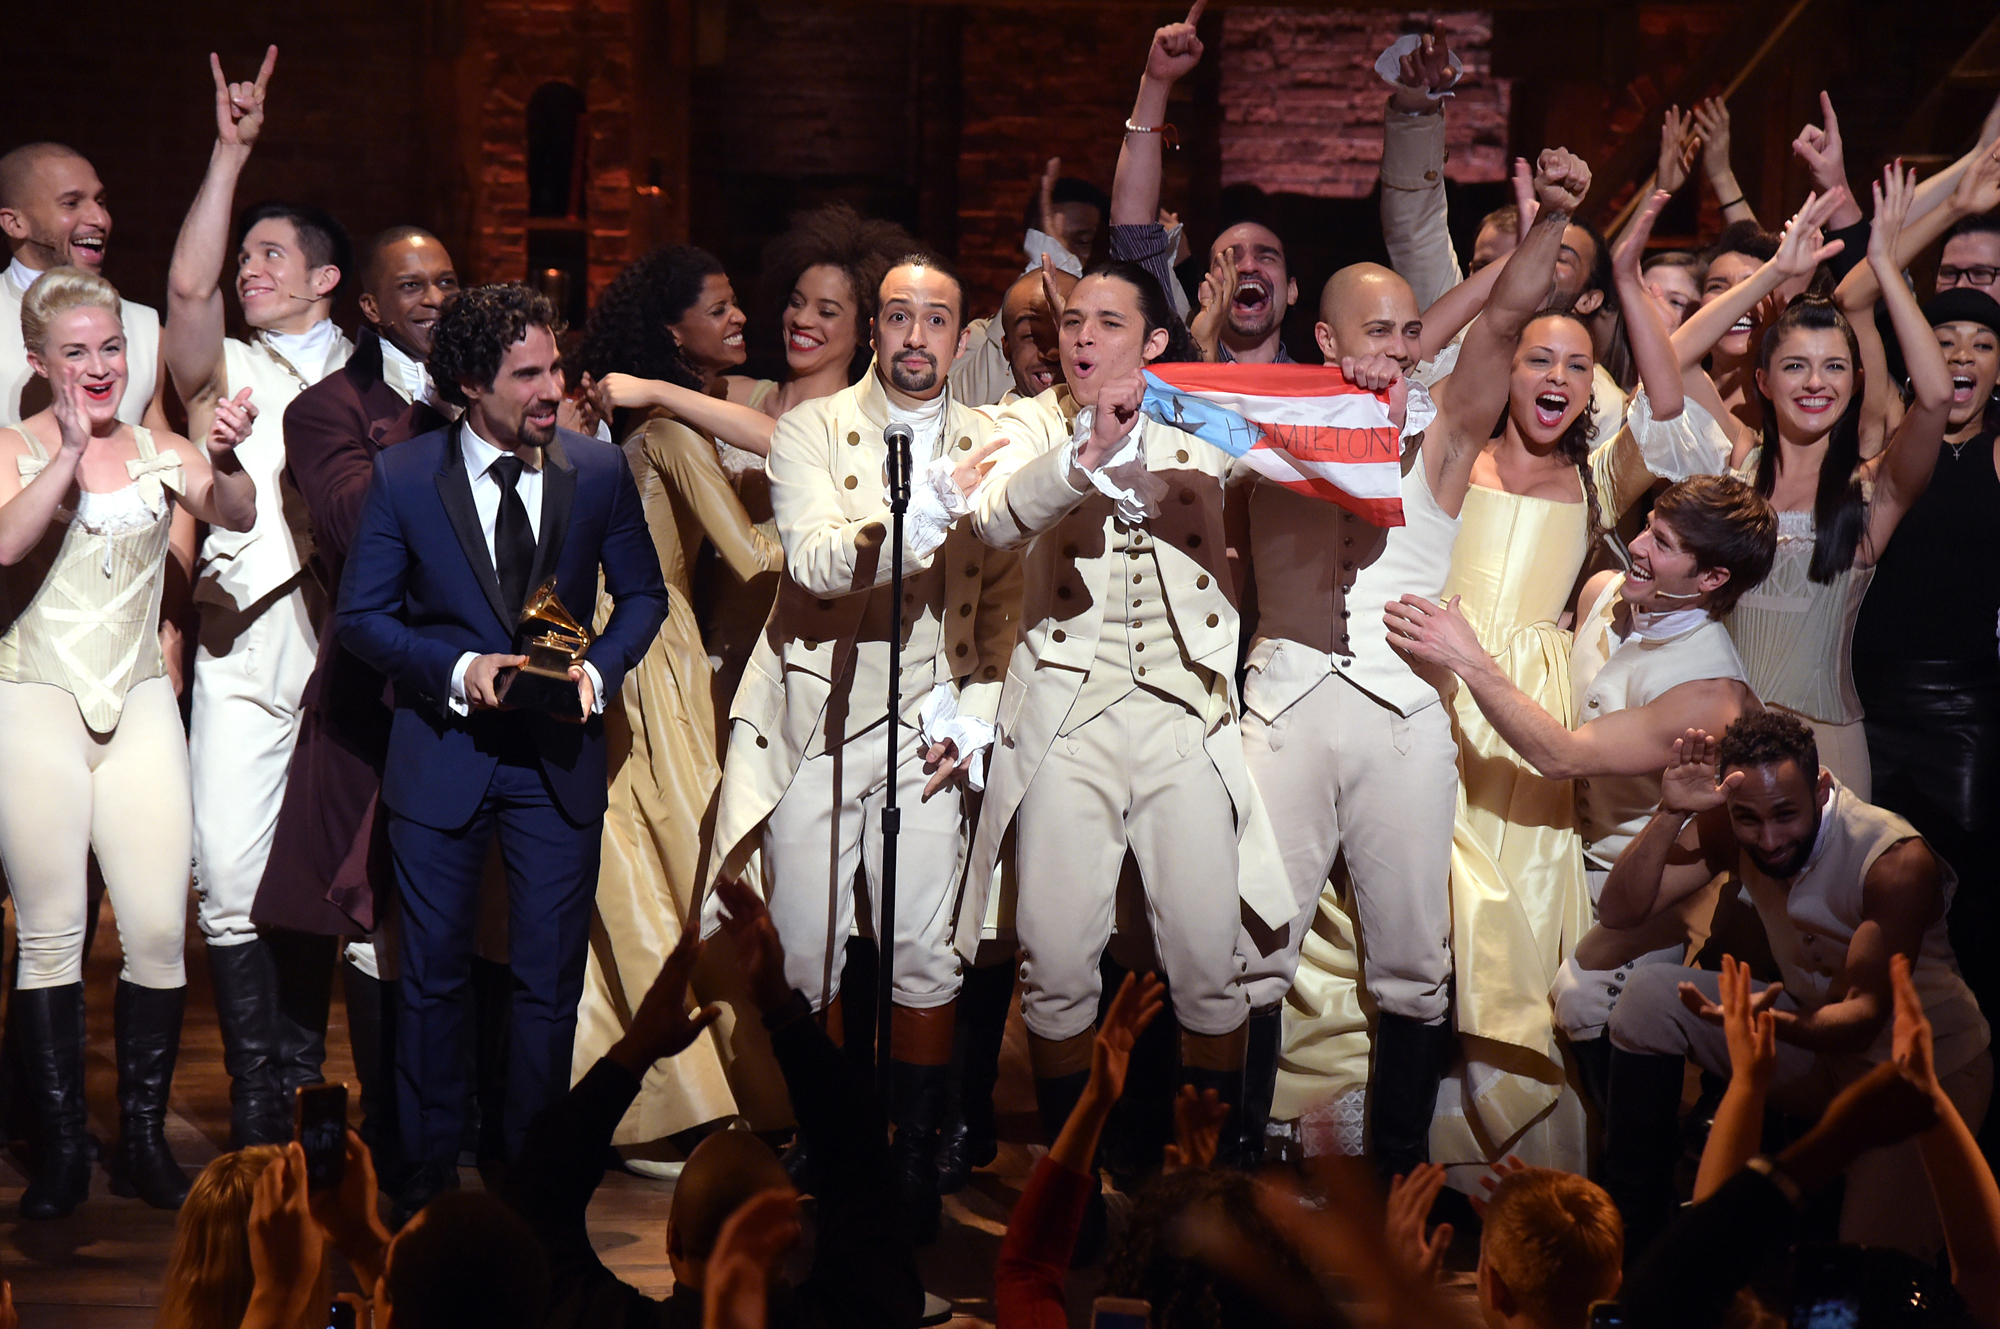 Cast and crew of Hamilton, including composer Lin-Manuel Miranda, at the microphone, celebrate on stage during a performance at the Grammy Awards on Feb. 15, 2016, in New York. (Theo Wargo/Getty Images)